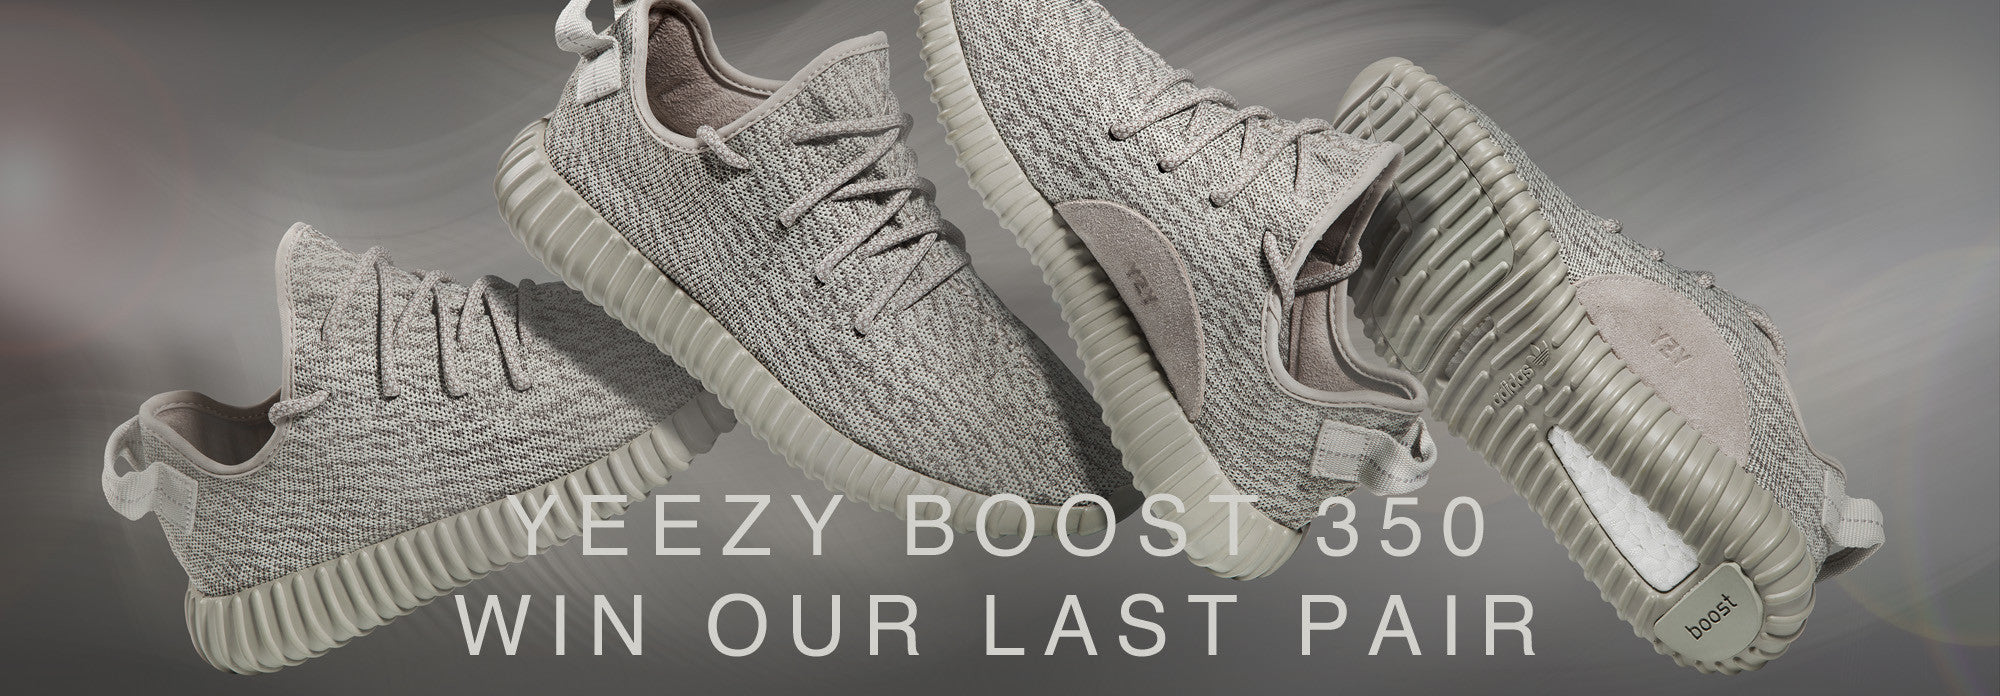 acacc3a77 YEEZY Boost 350 Giveaway